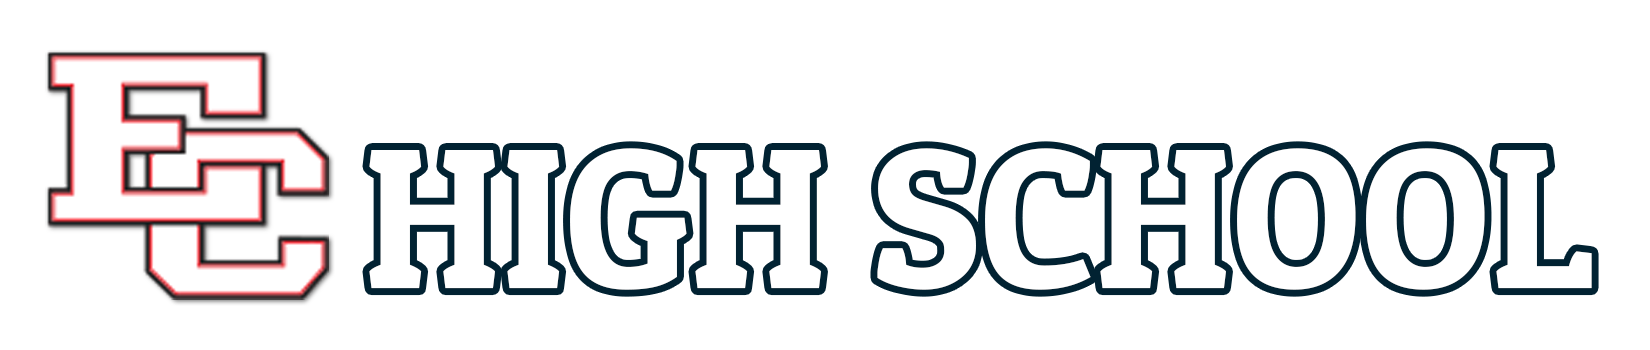 El Campo High School Logo